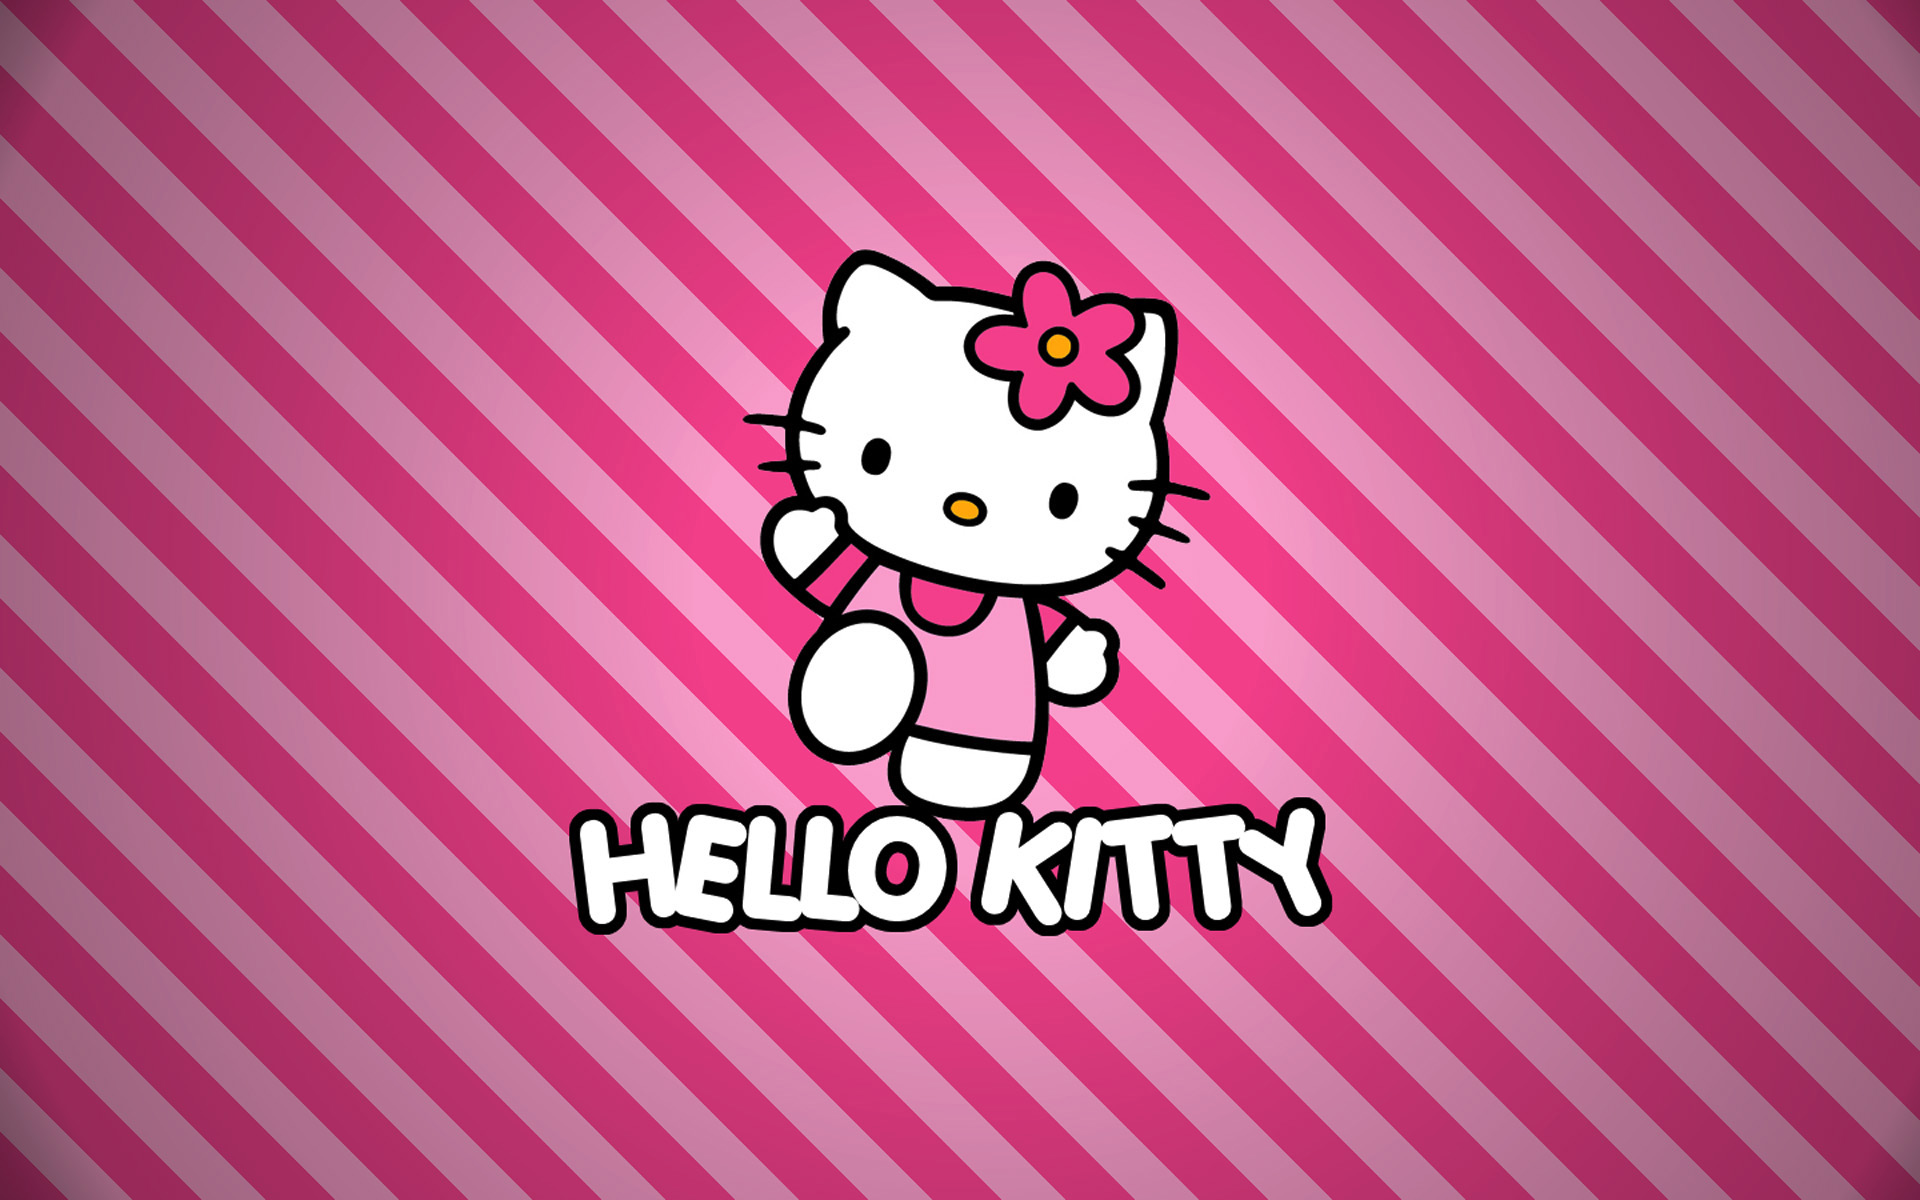 Hello Kitty - 1920x1200